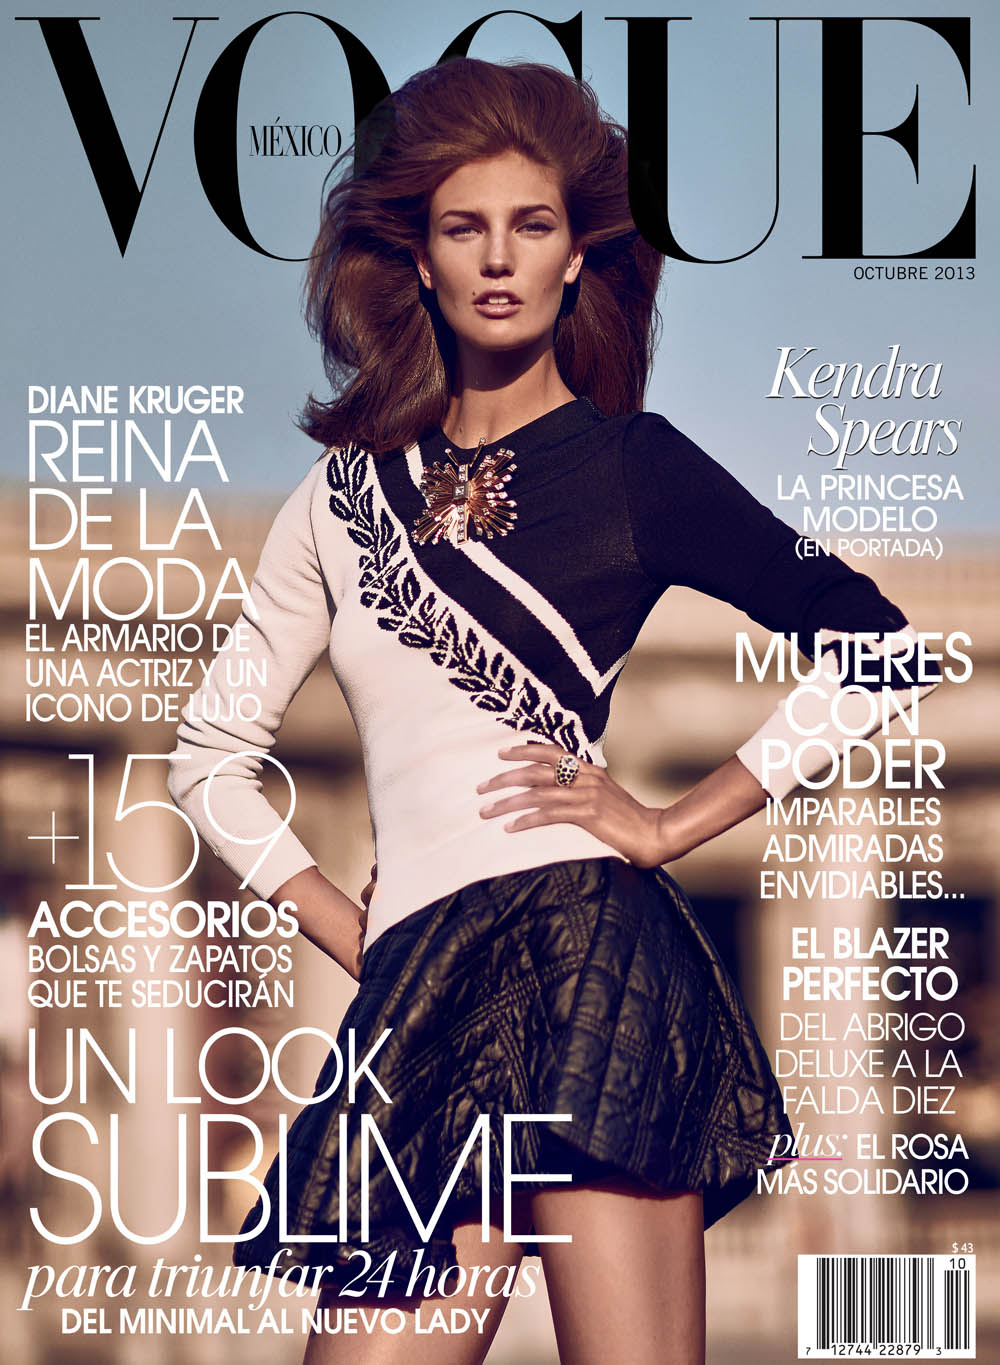 KENDRA SPEARS FOR VOGUE MEXICO